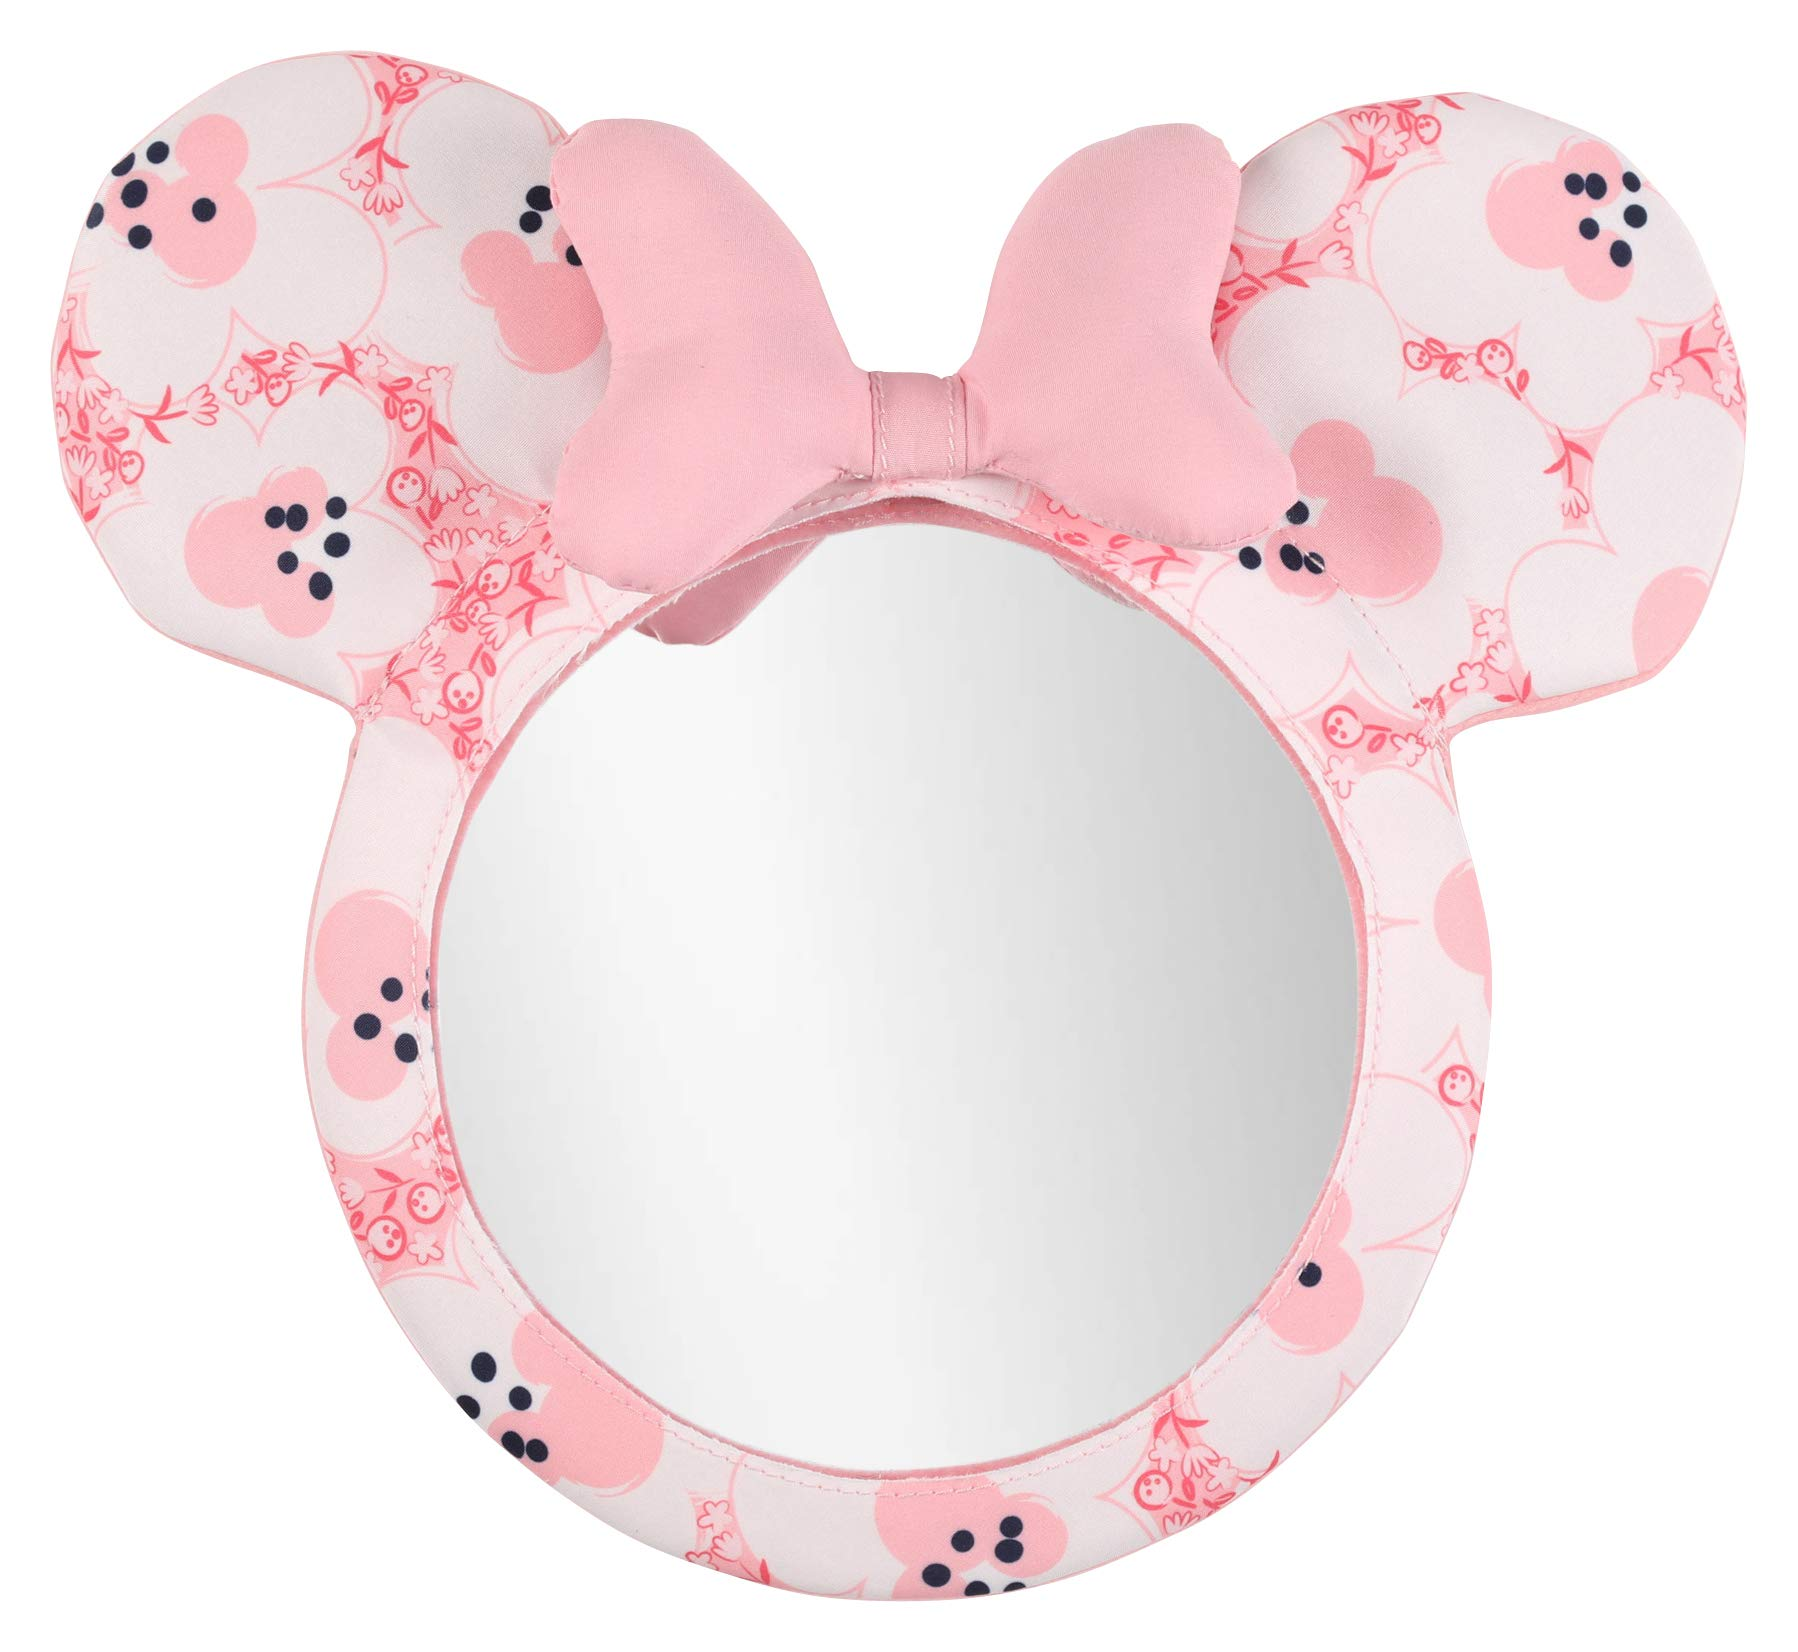 Disney Minnie Mouse Infant Rear Facing Travel Mirror- Printed by Disney